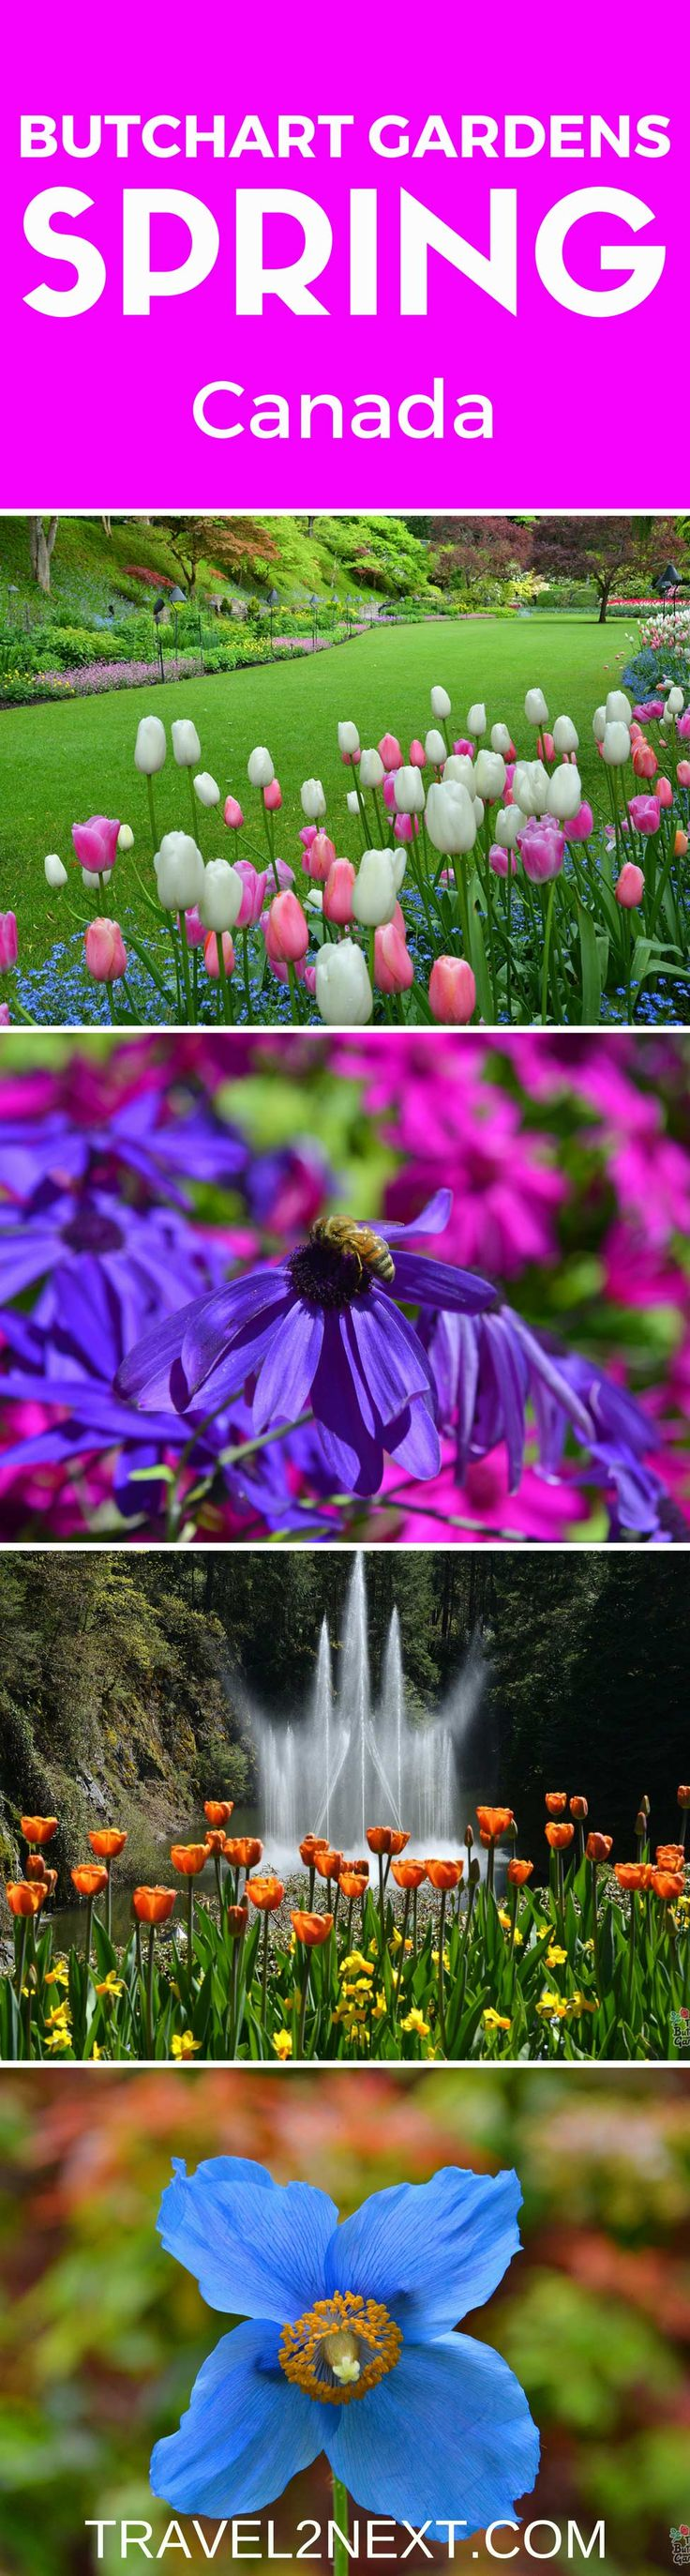 Butchart Gardens Canada – Garden For All Seasons. The Butchart Gardens Victoria BC is an ideal backdrop to while away the time.